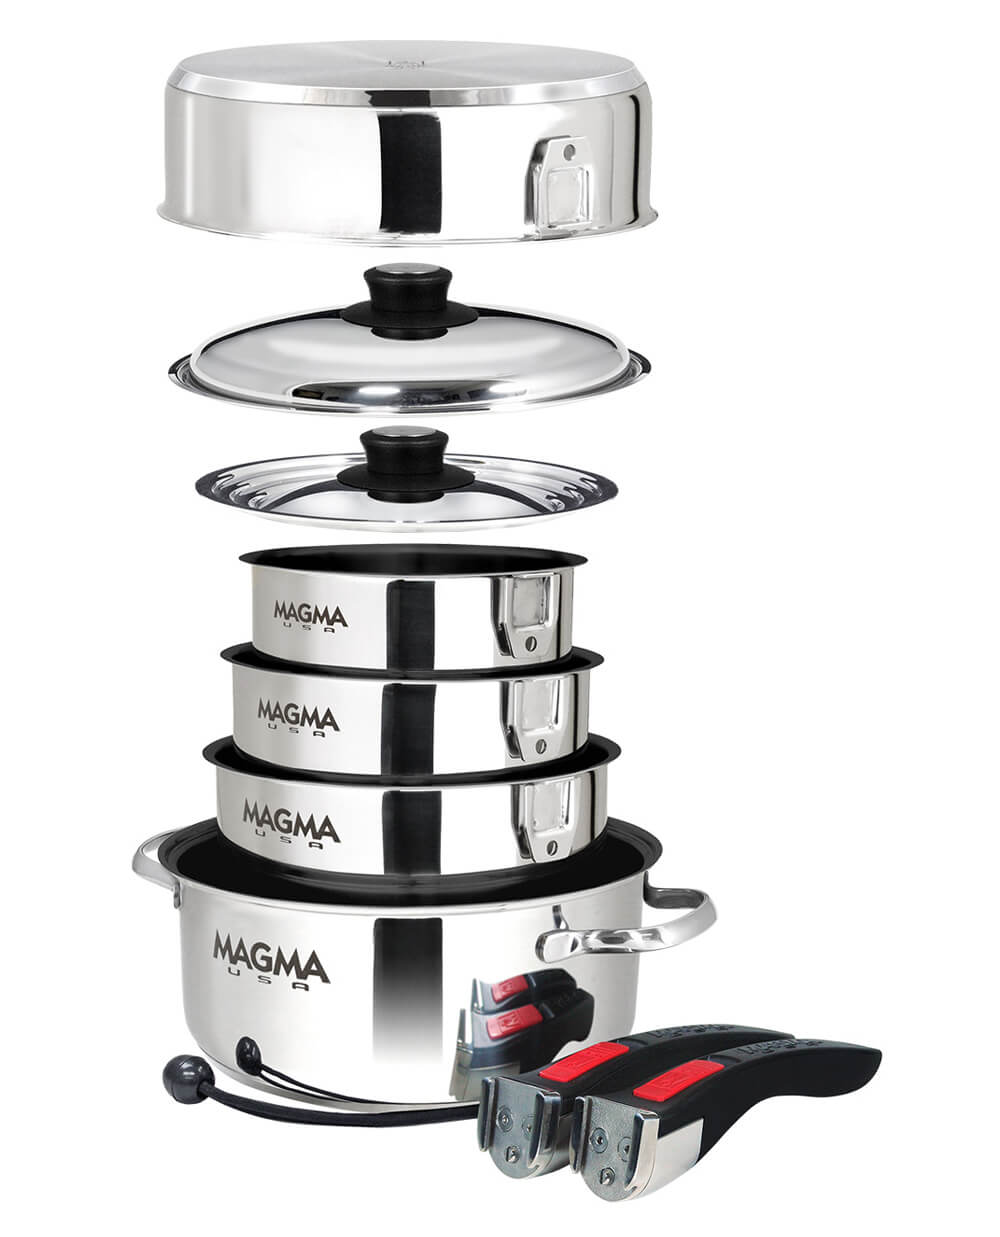 Magma Cookware Review: Camping Gear For Gourmet Cooking Off the Beaten Path: The Complete Stacking Package